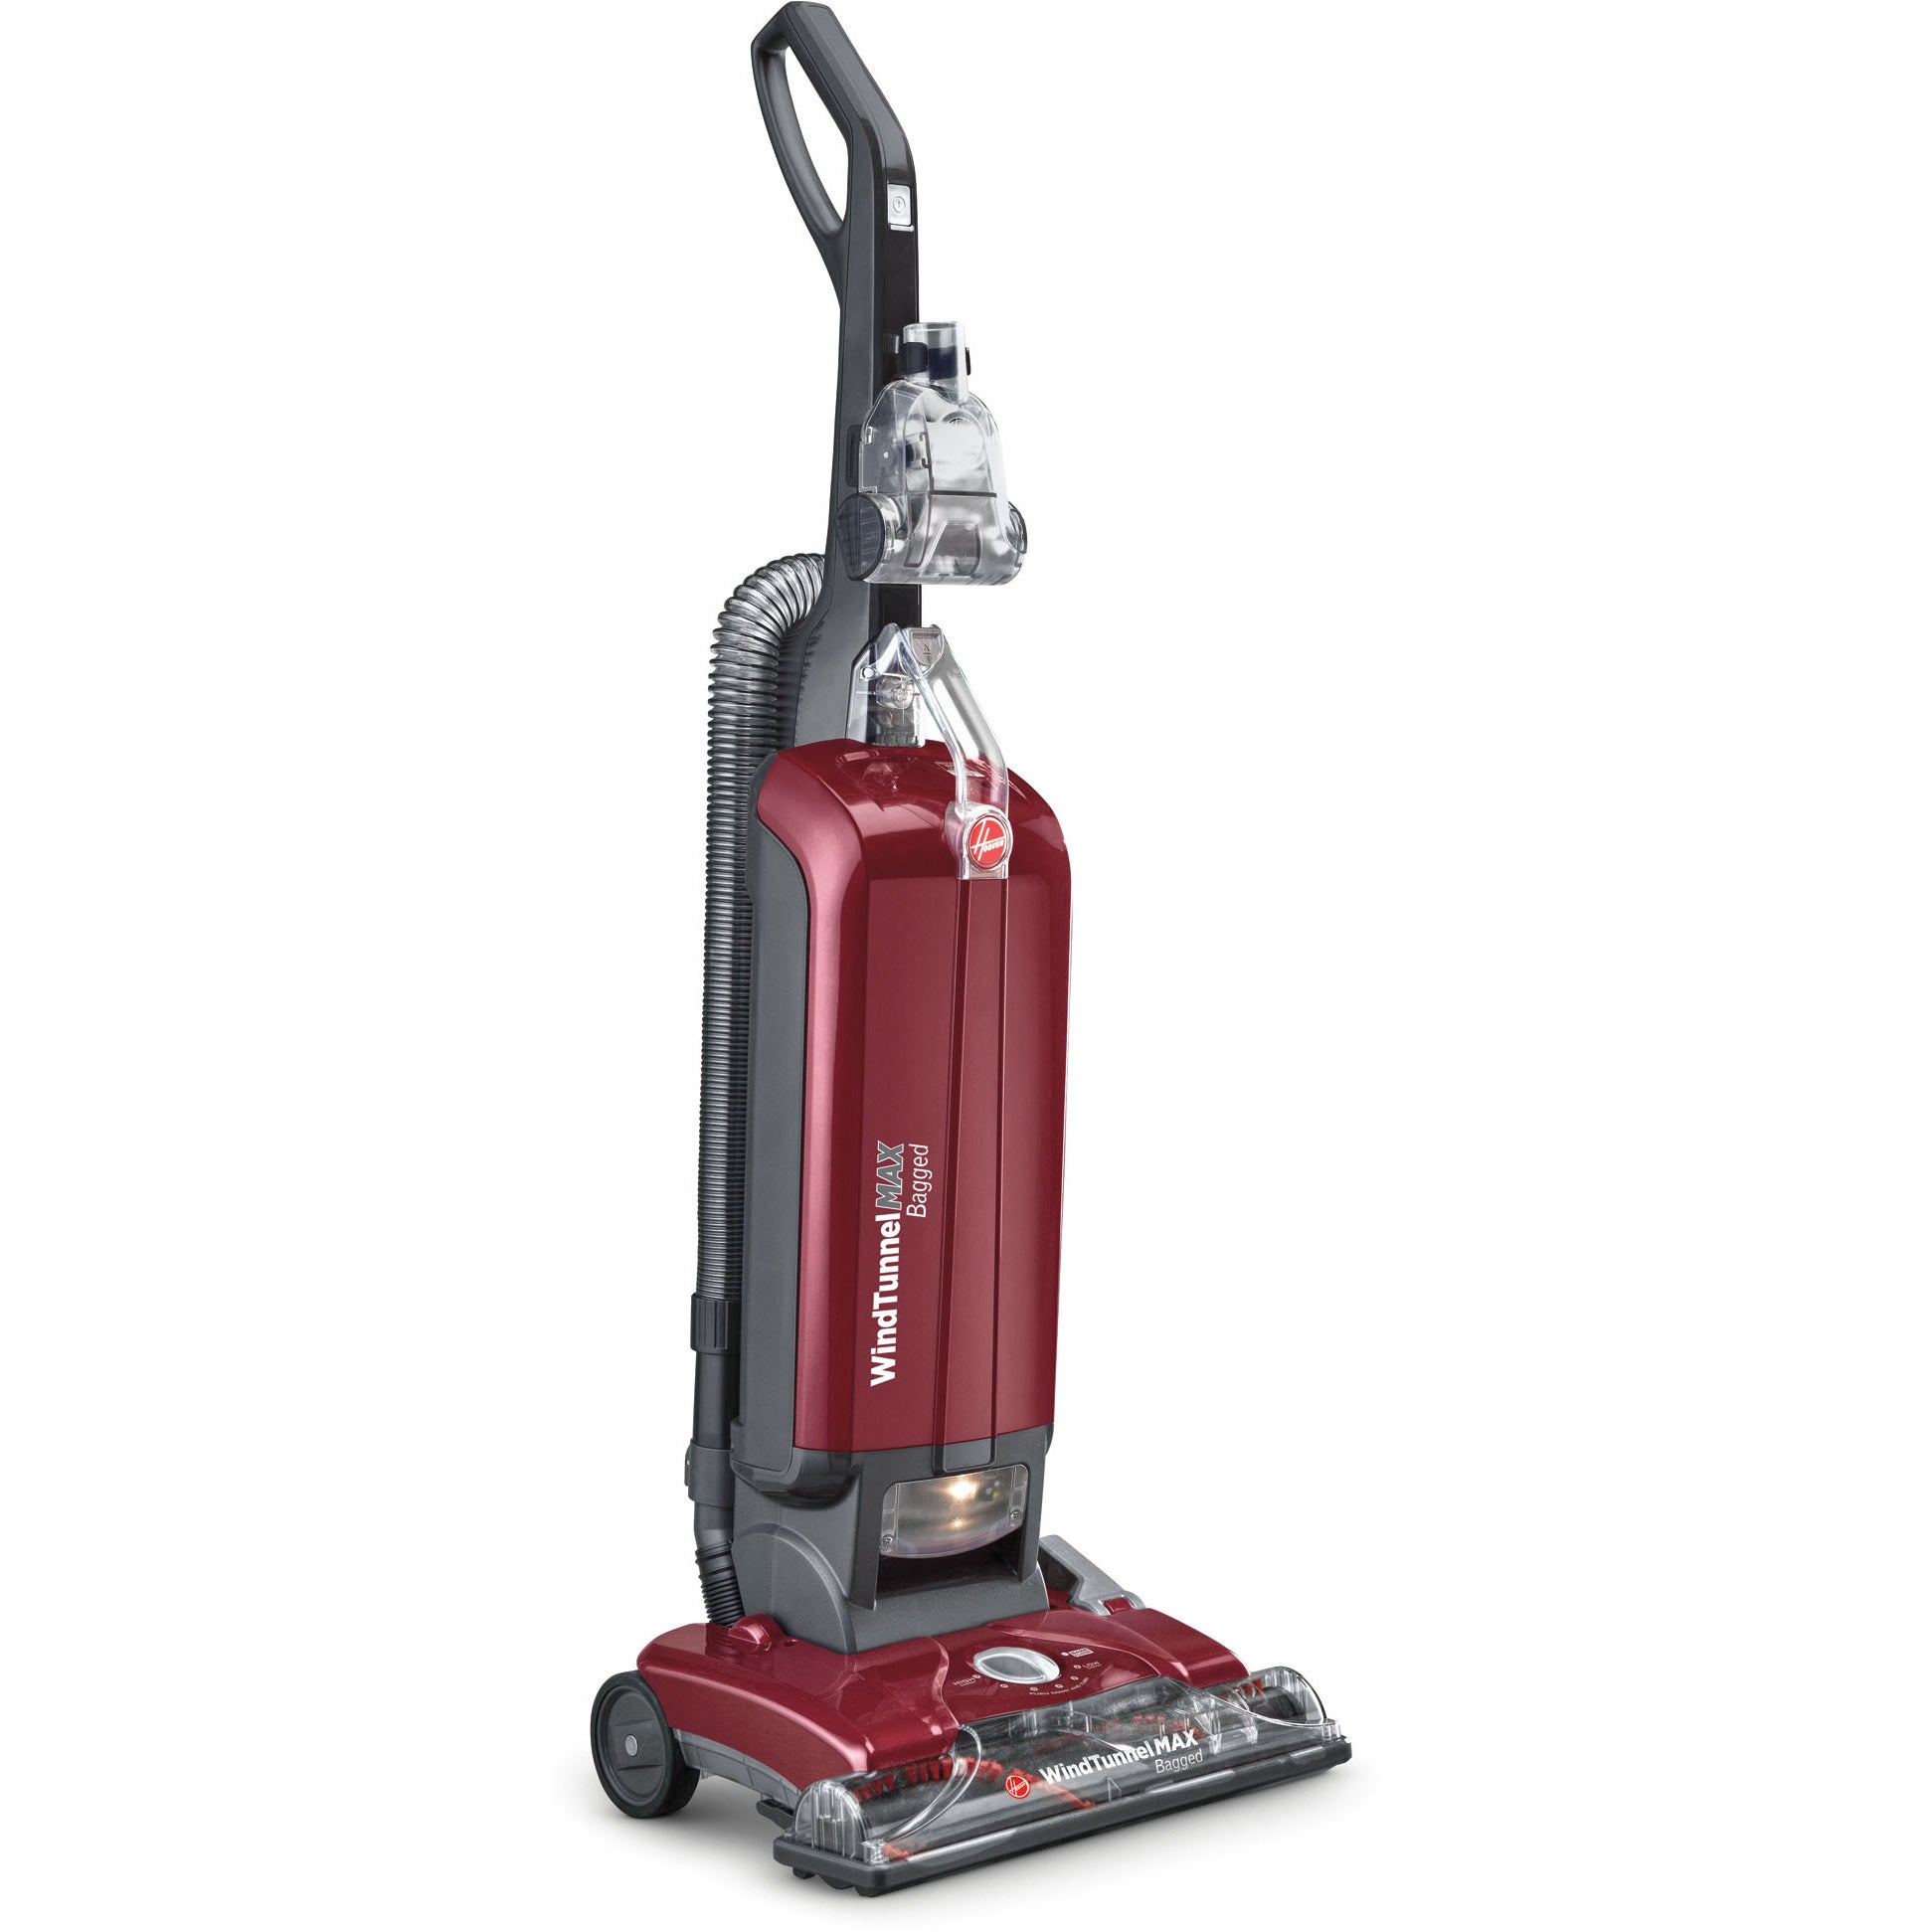 Hoover WindTunnel Max Bagged Upright Vacuum at Sears.com